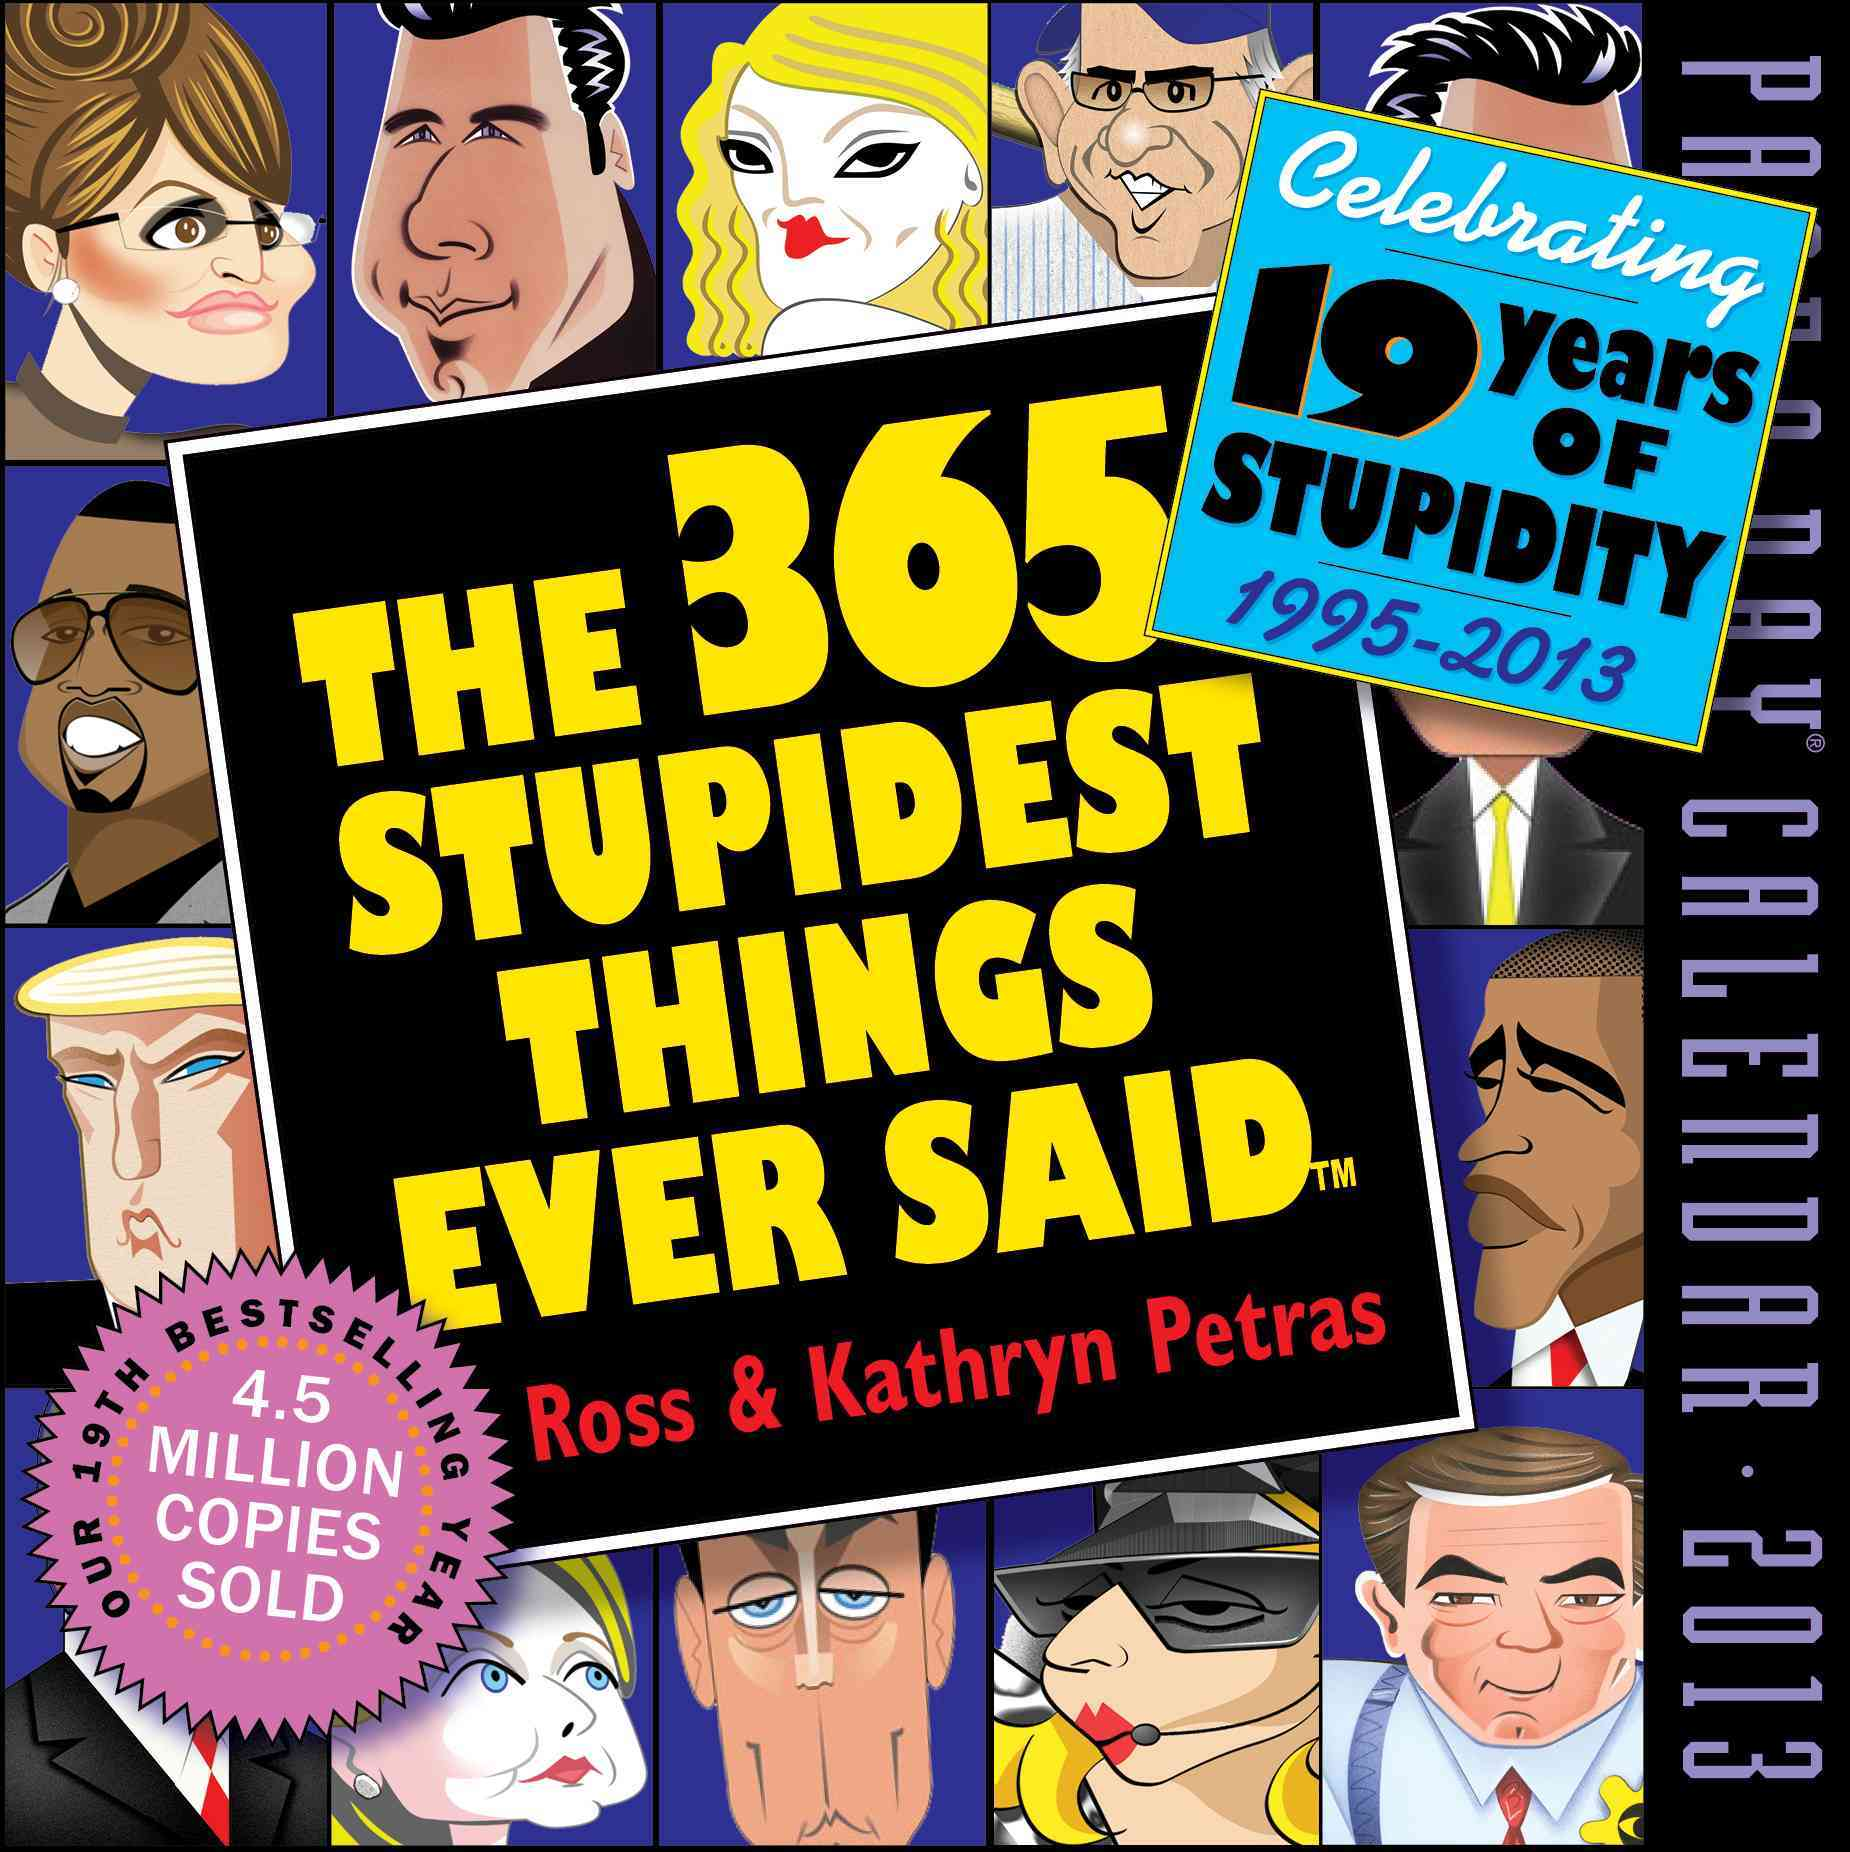 The 365 Stupidest Things Ever Said 2013 Calendar